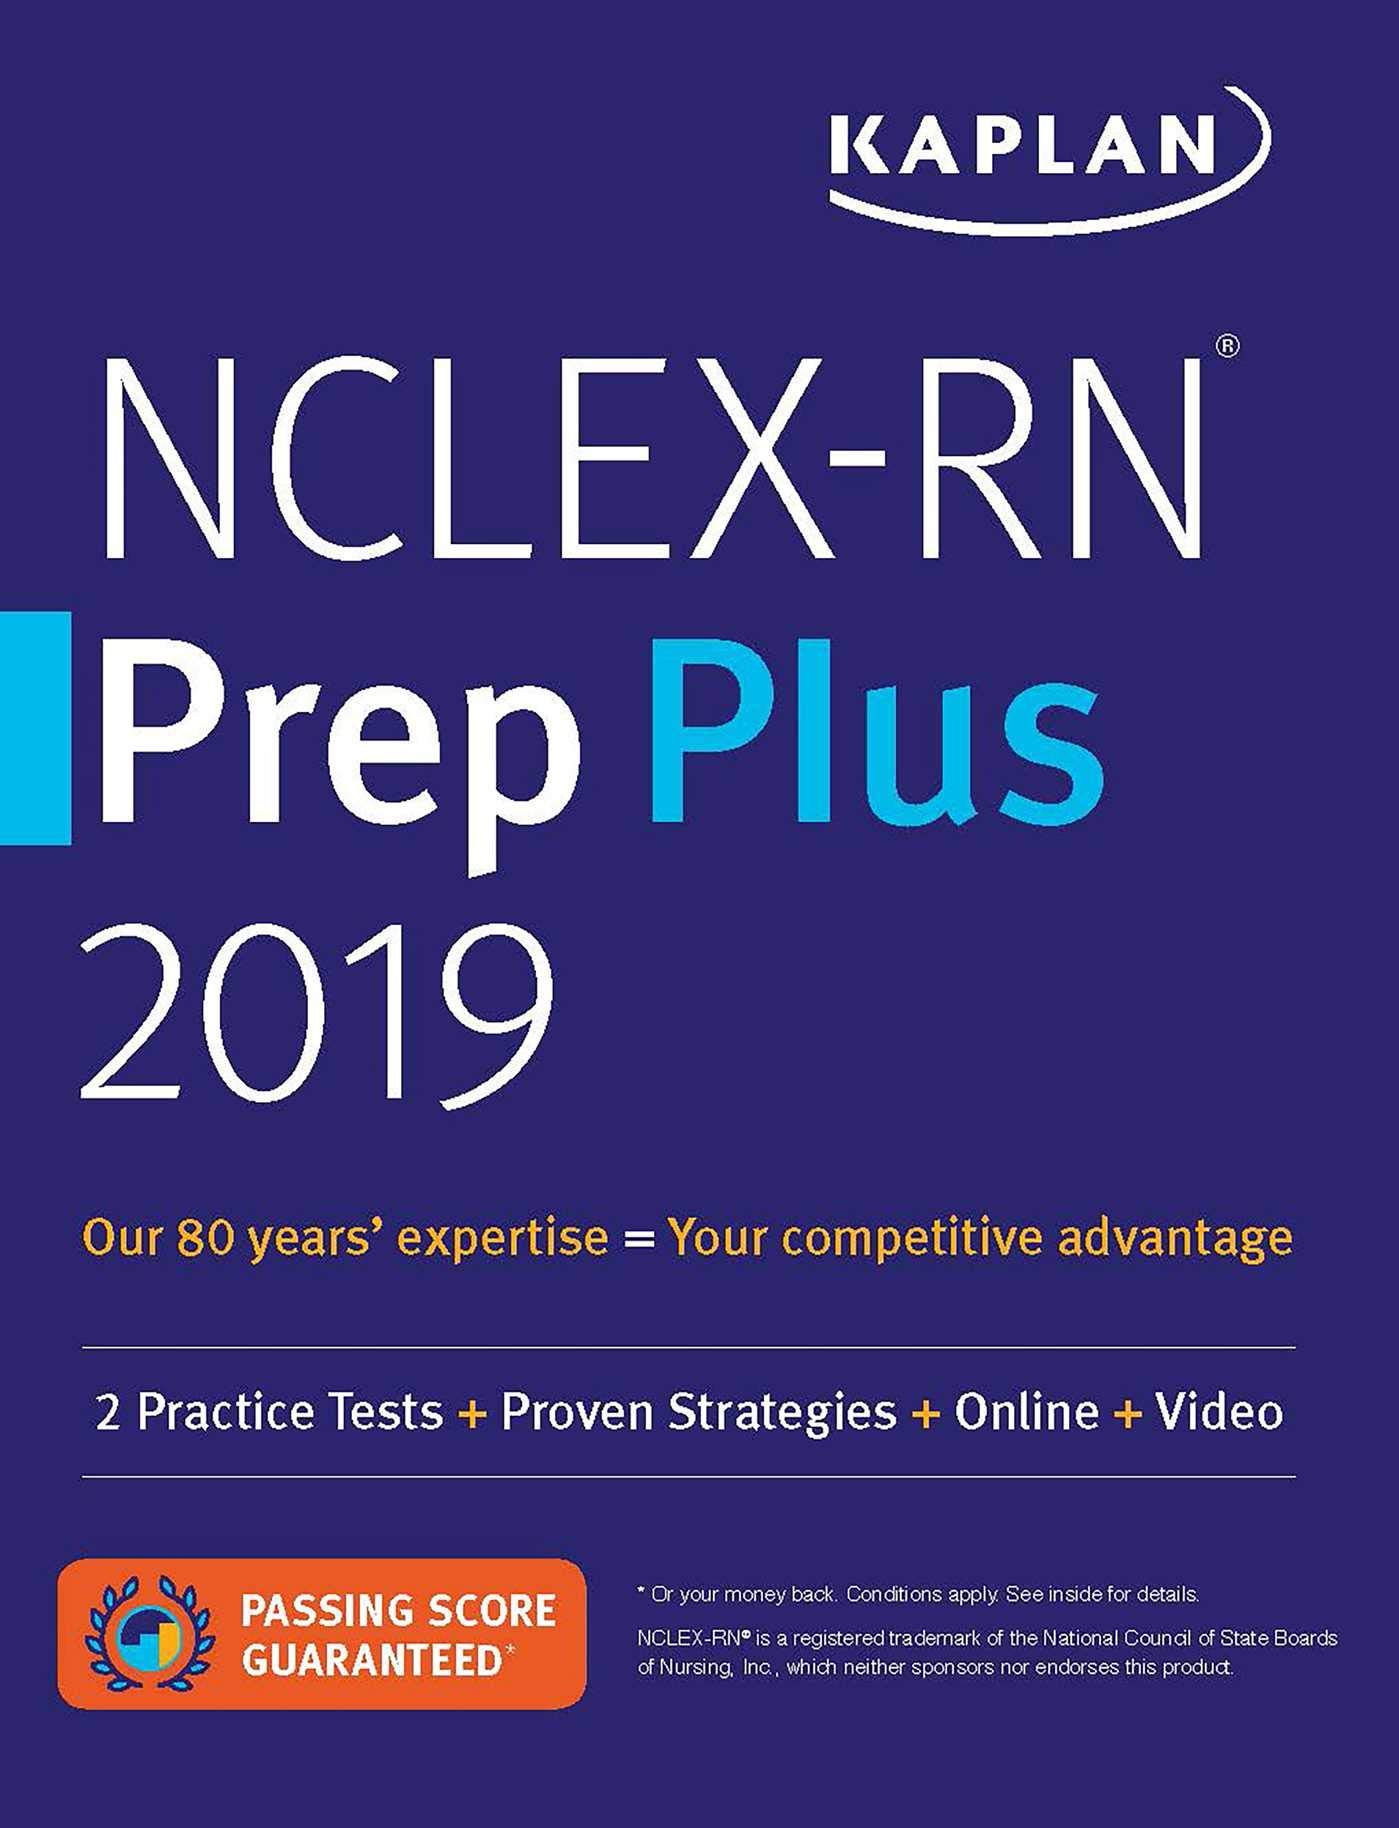 NCLEX-RN Prep Plus 2019: 2 Practice Tests + Proven